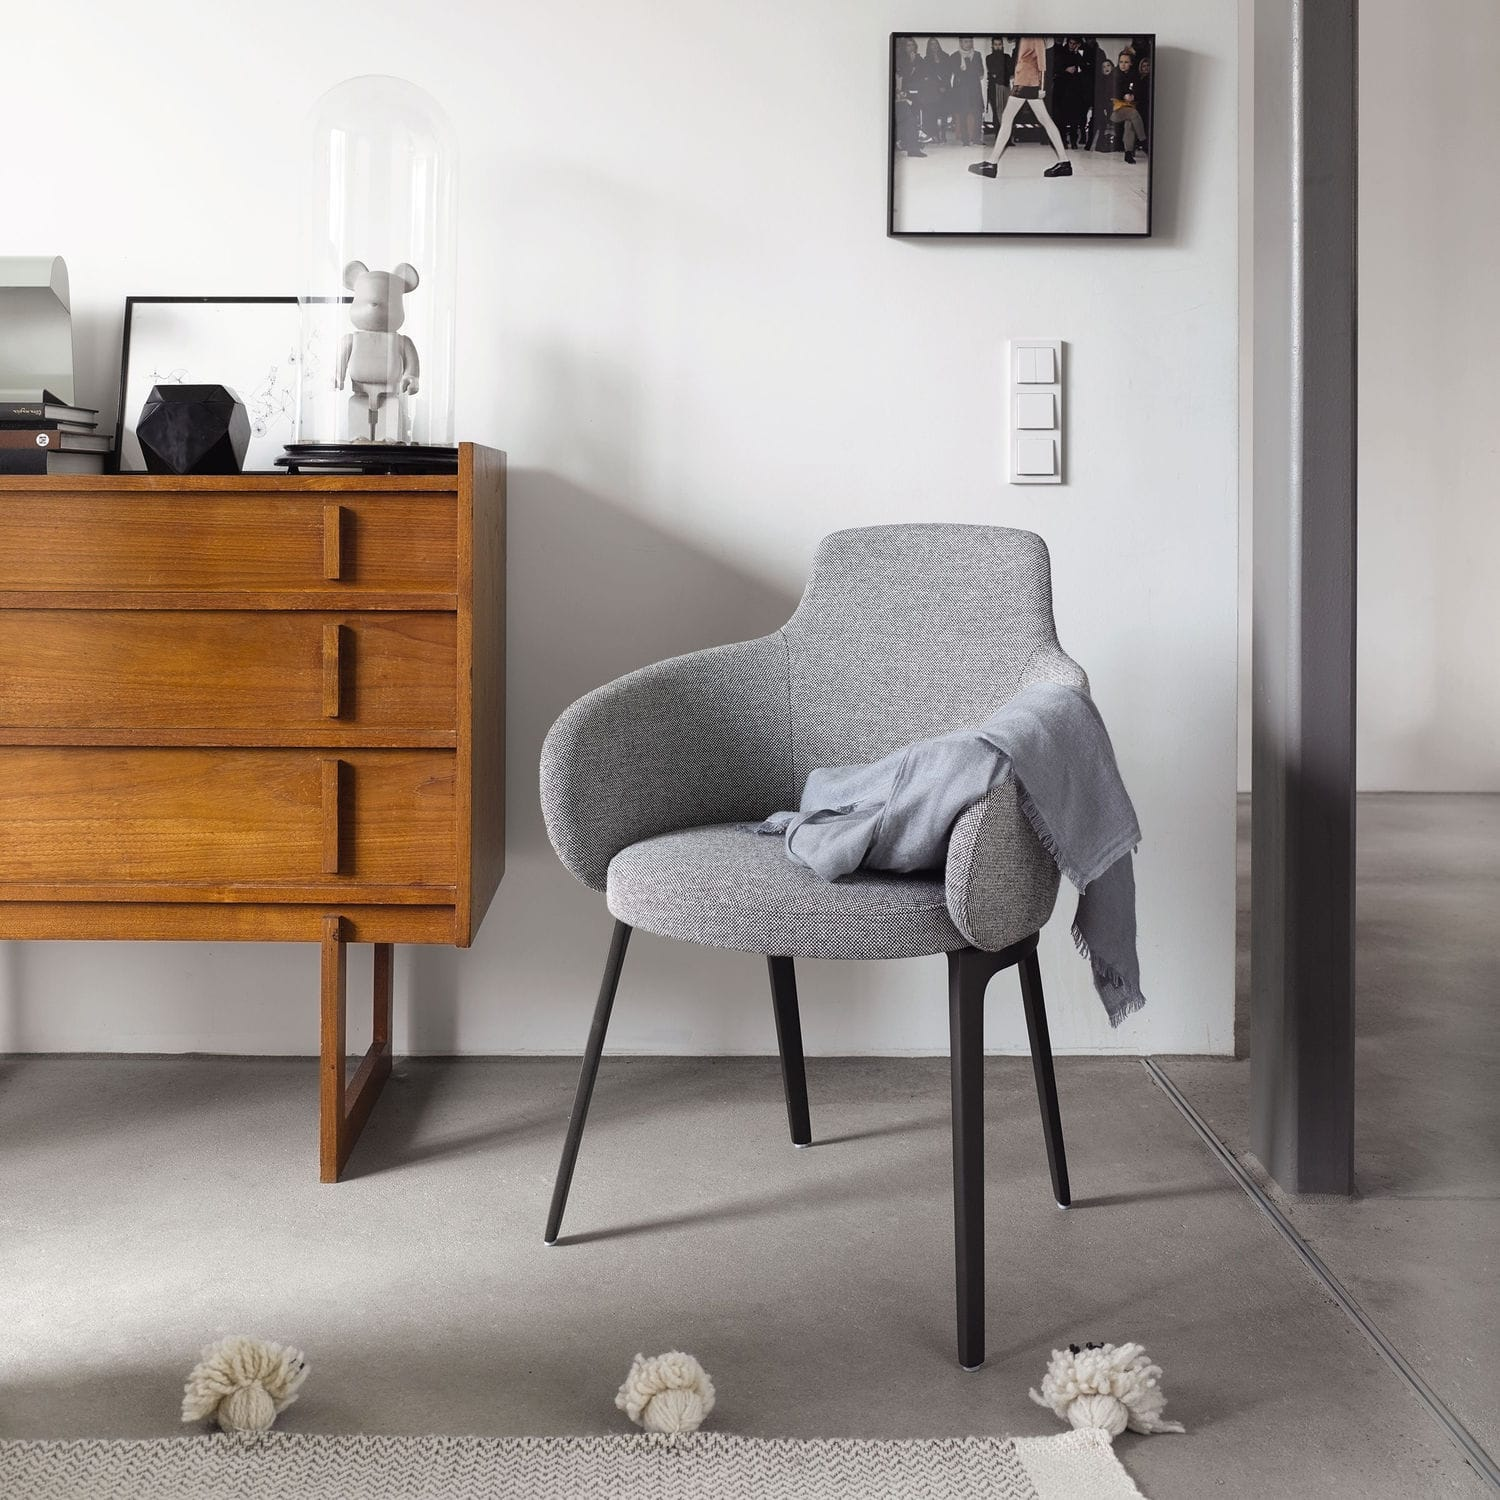 Contemporary Chair / Upholstered / With Armrests / Fabric   ROC By Uwe  Fischer